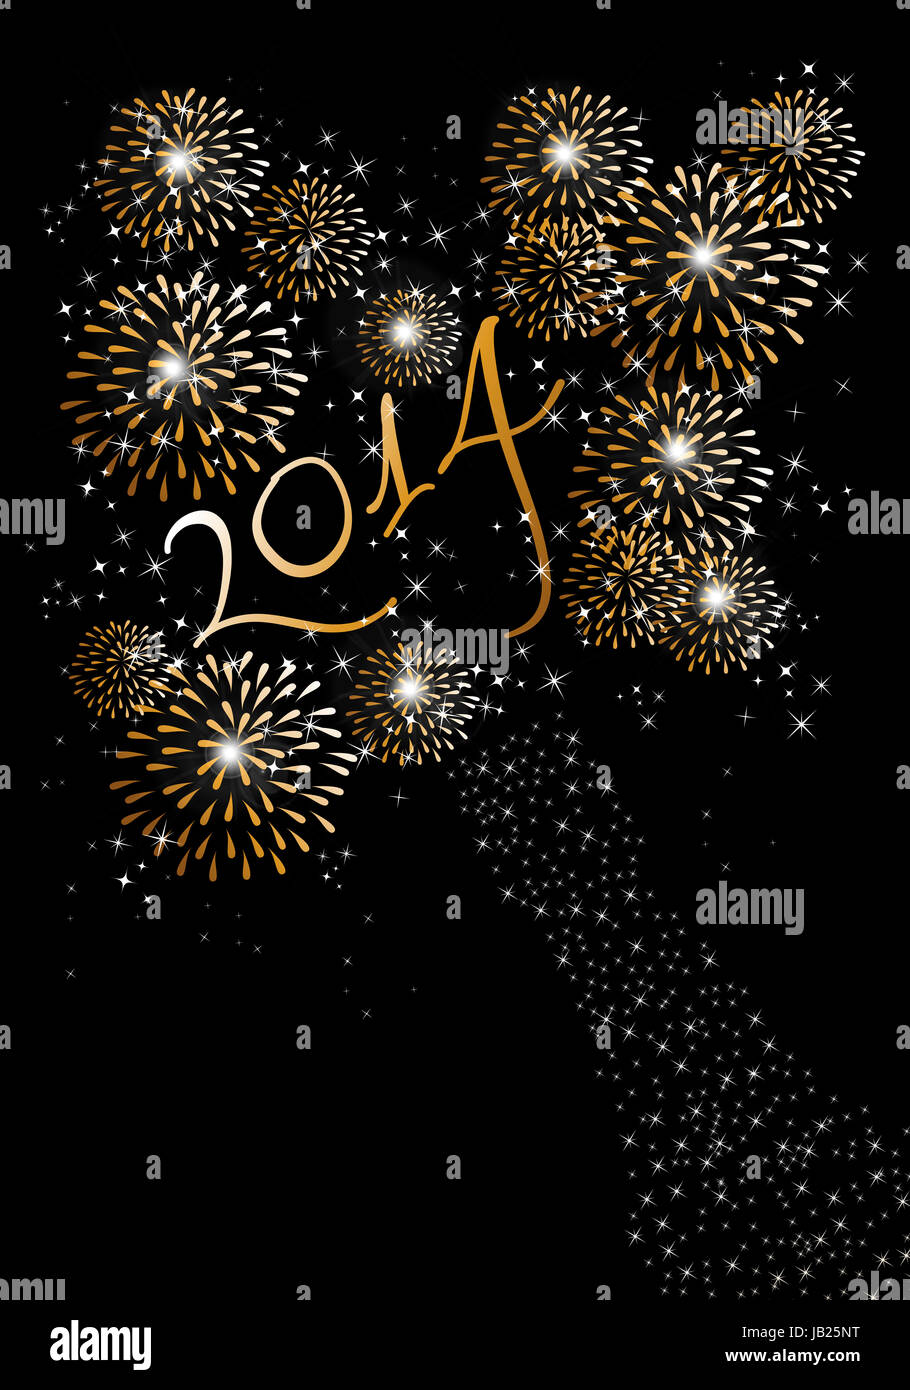 Happy new year 2014 holidays fireworks greeting card background happy new year 2014 holidays fireworks greeting card background eps10 illustration organized in layers for easy editing m4hsunfo